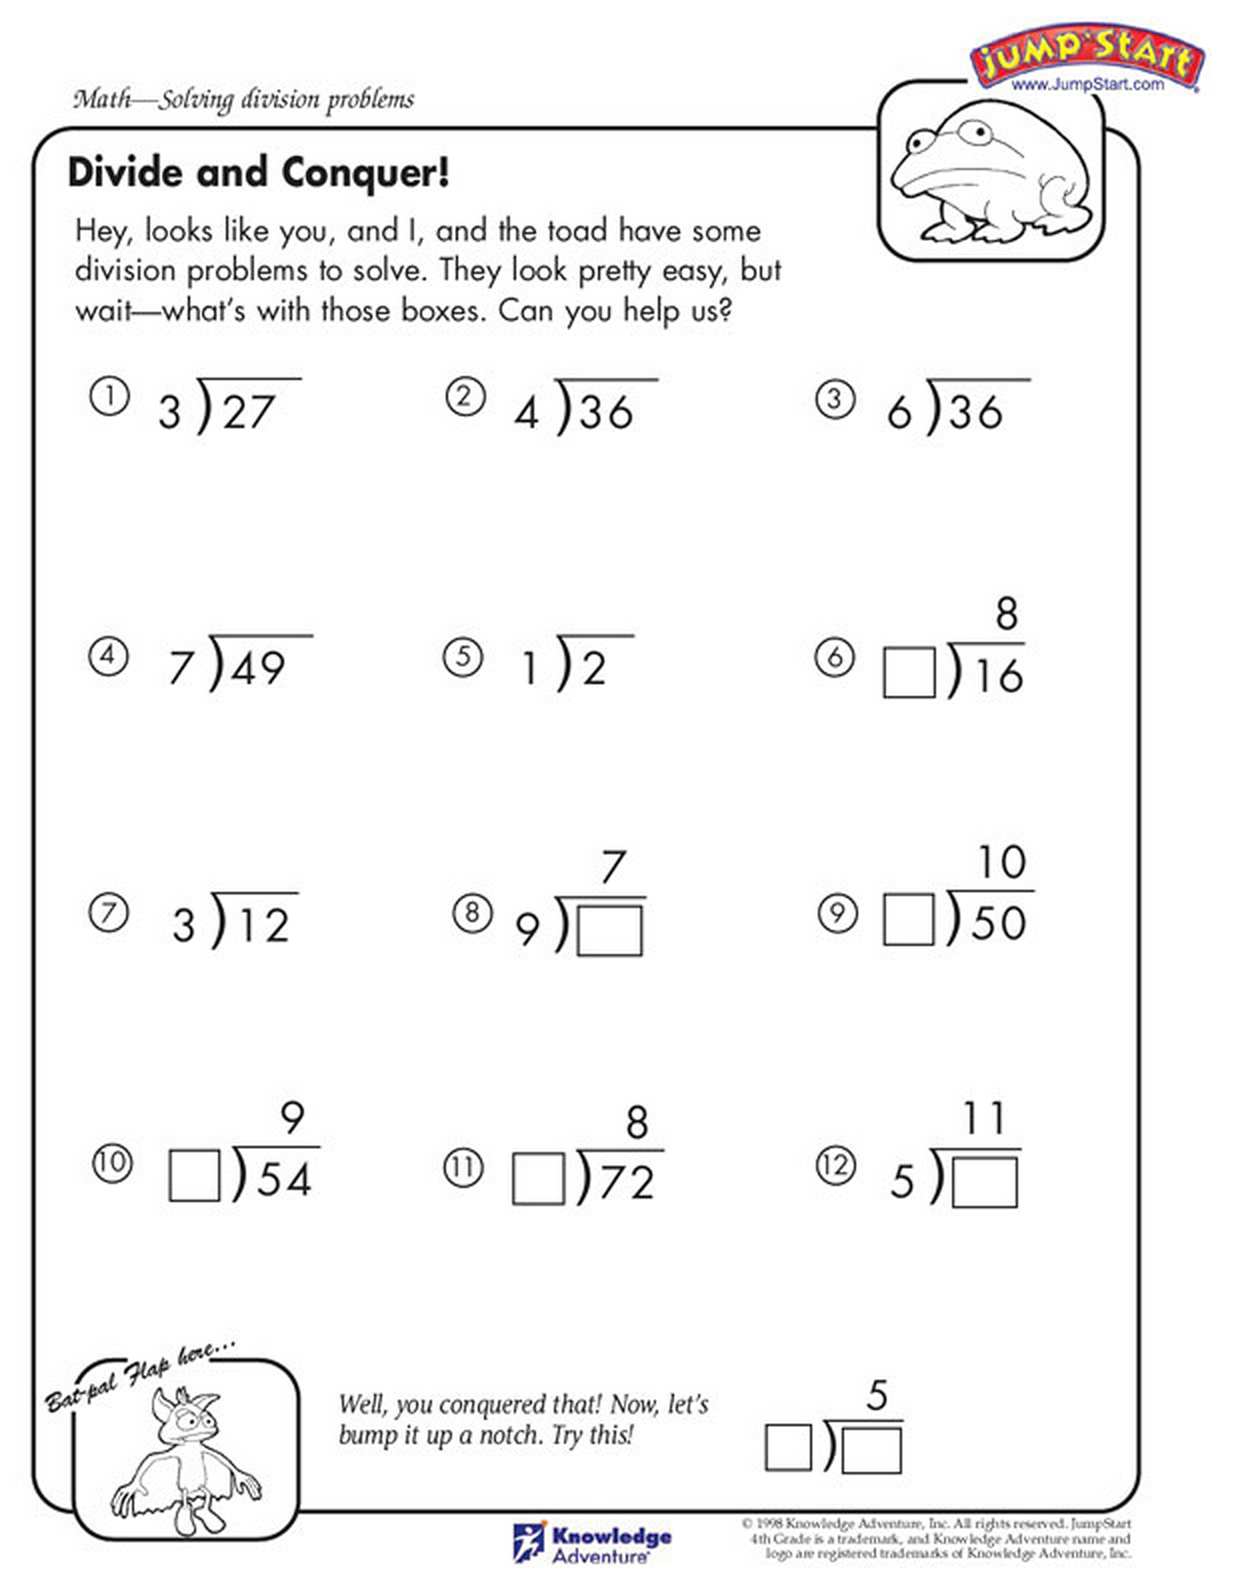 Uncategorized Jumpstart Worksheets help mister toad solve these division problems printable math divide and conquer grade worksheets jumpstart